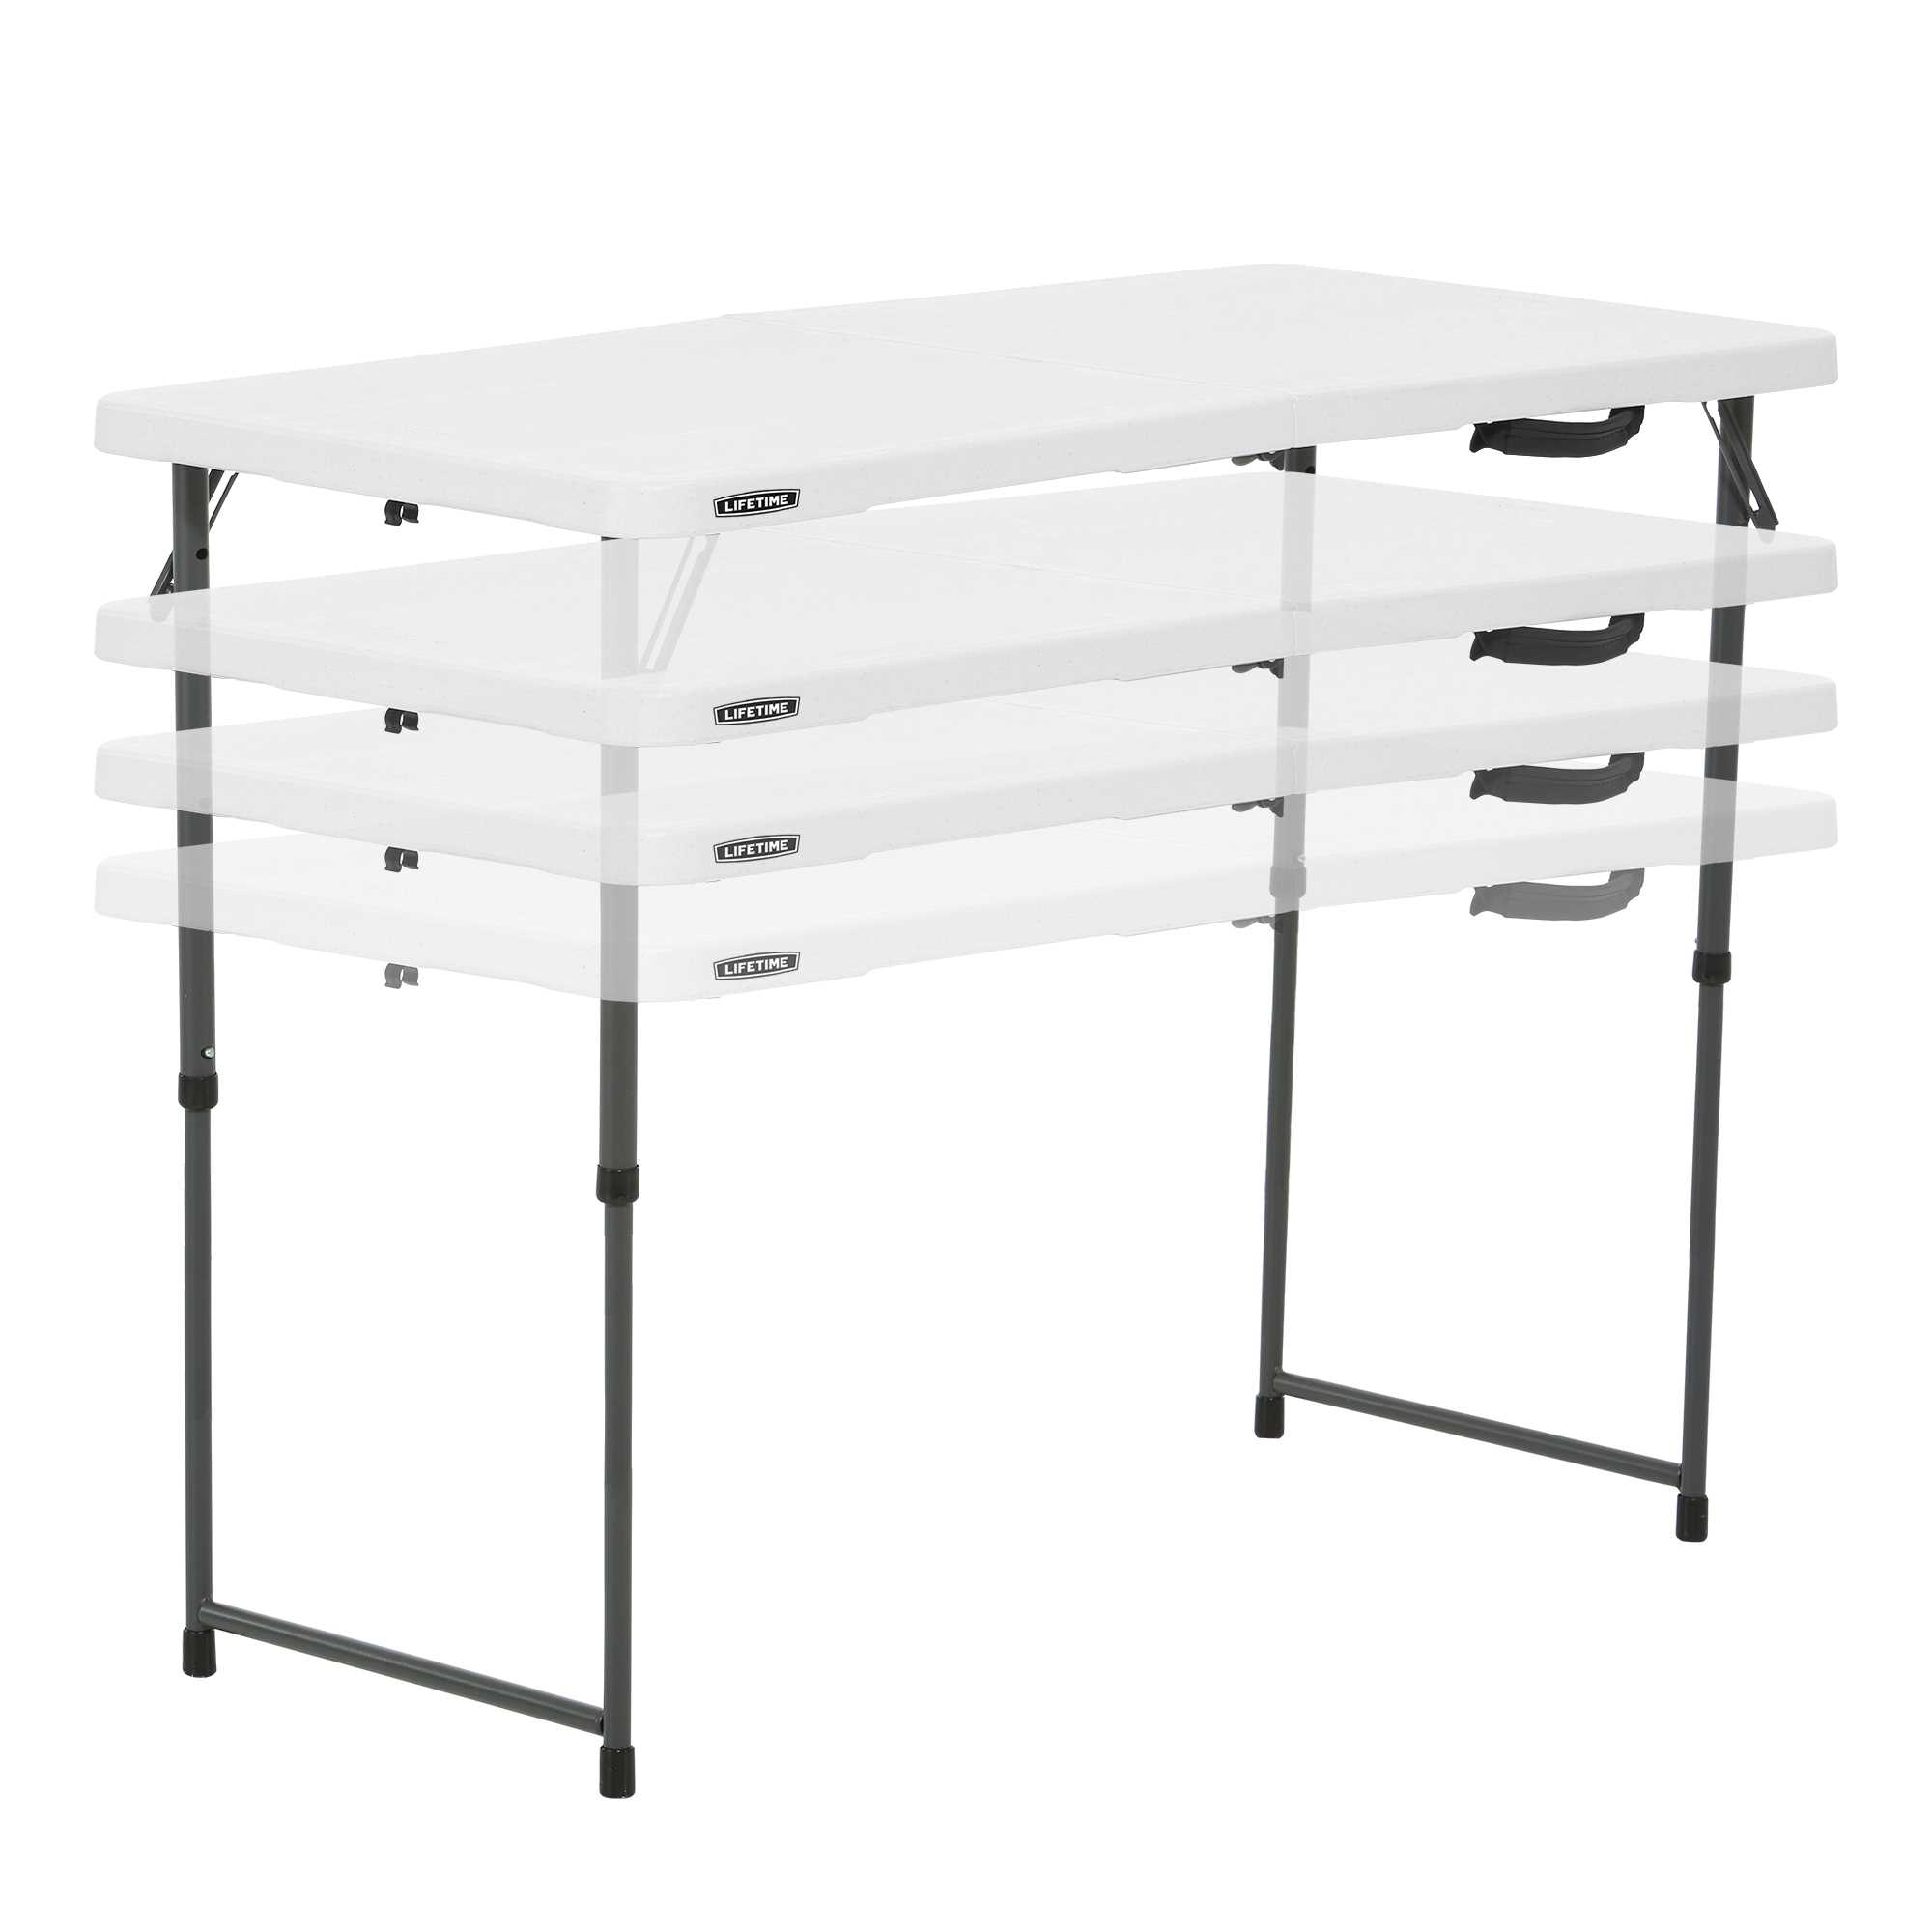 Lifetime 4-Foot Adjustable Fold-In-Half Table (Light Commercial)